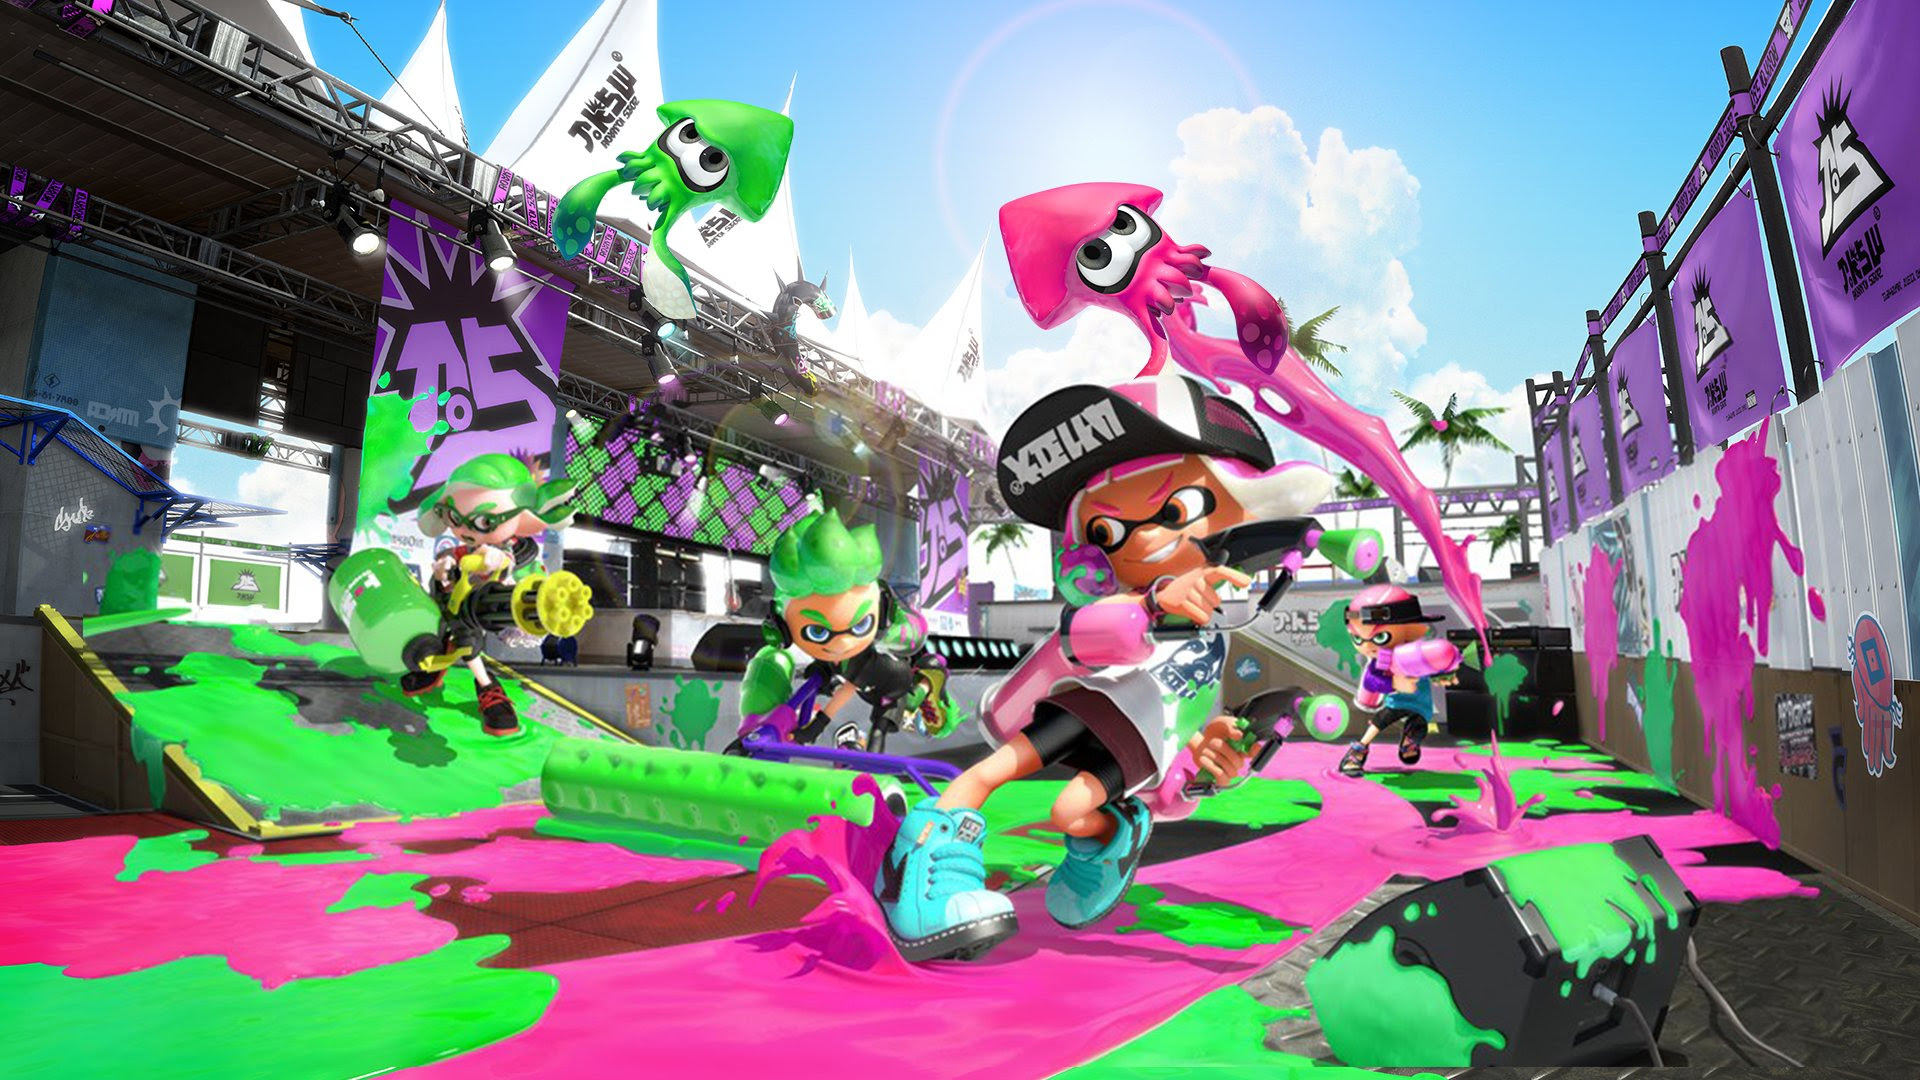 Watch out, Splatoon 2 may punish excessive disconnecting screenshot